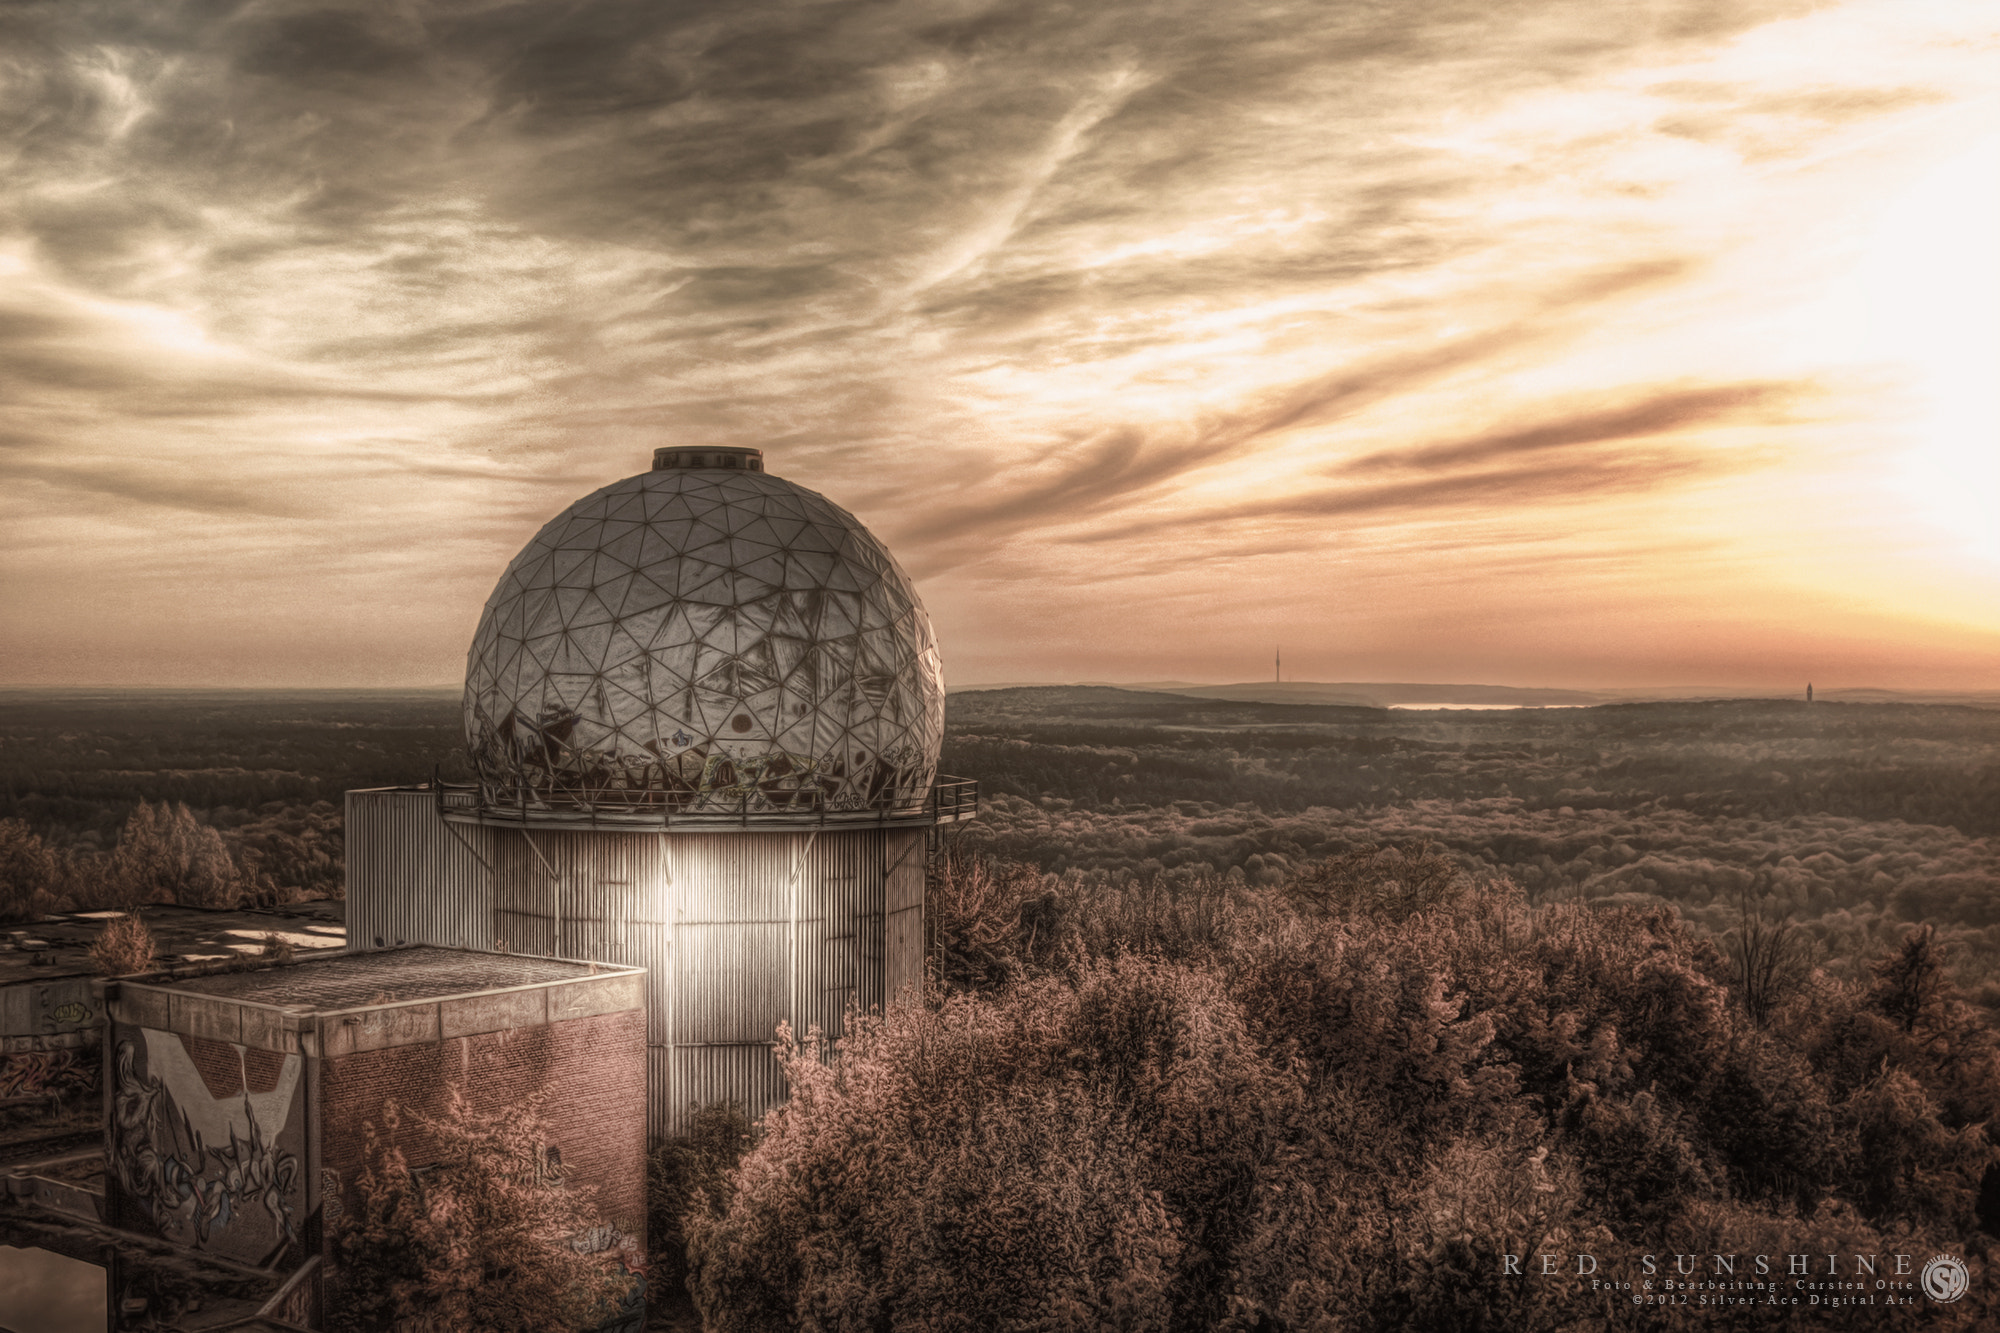 Photograph RED SUNSHINE (HDR) by Carsten Otte on 500px